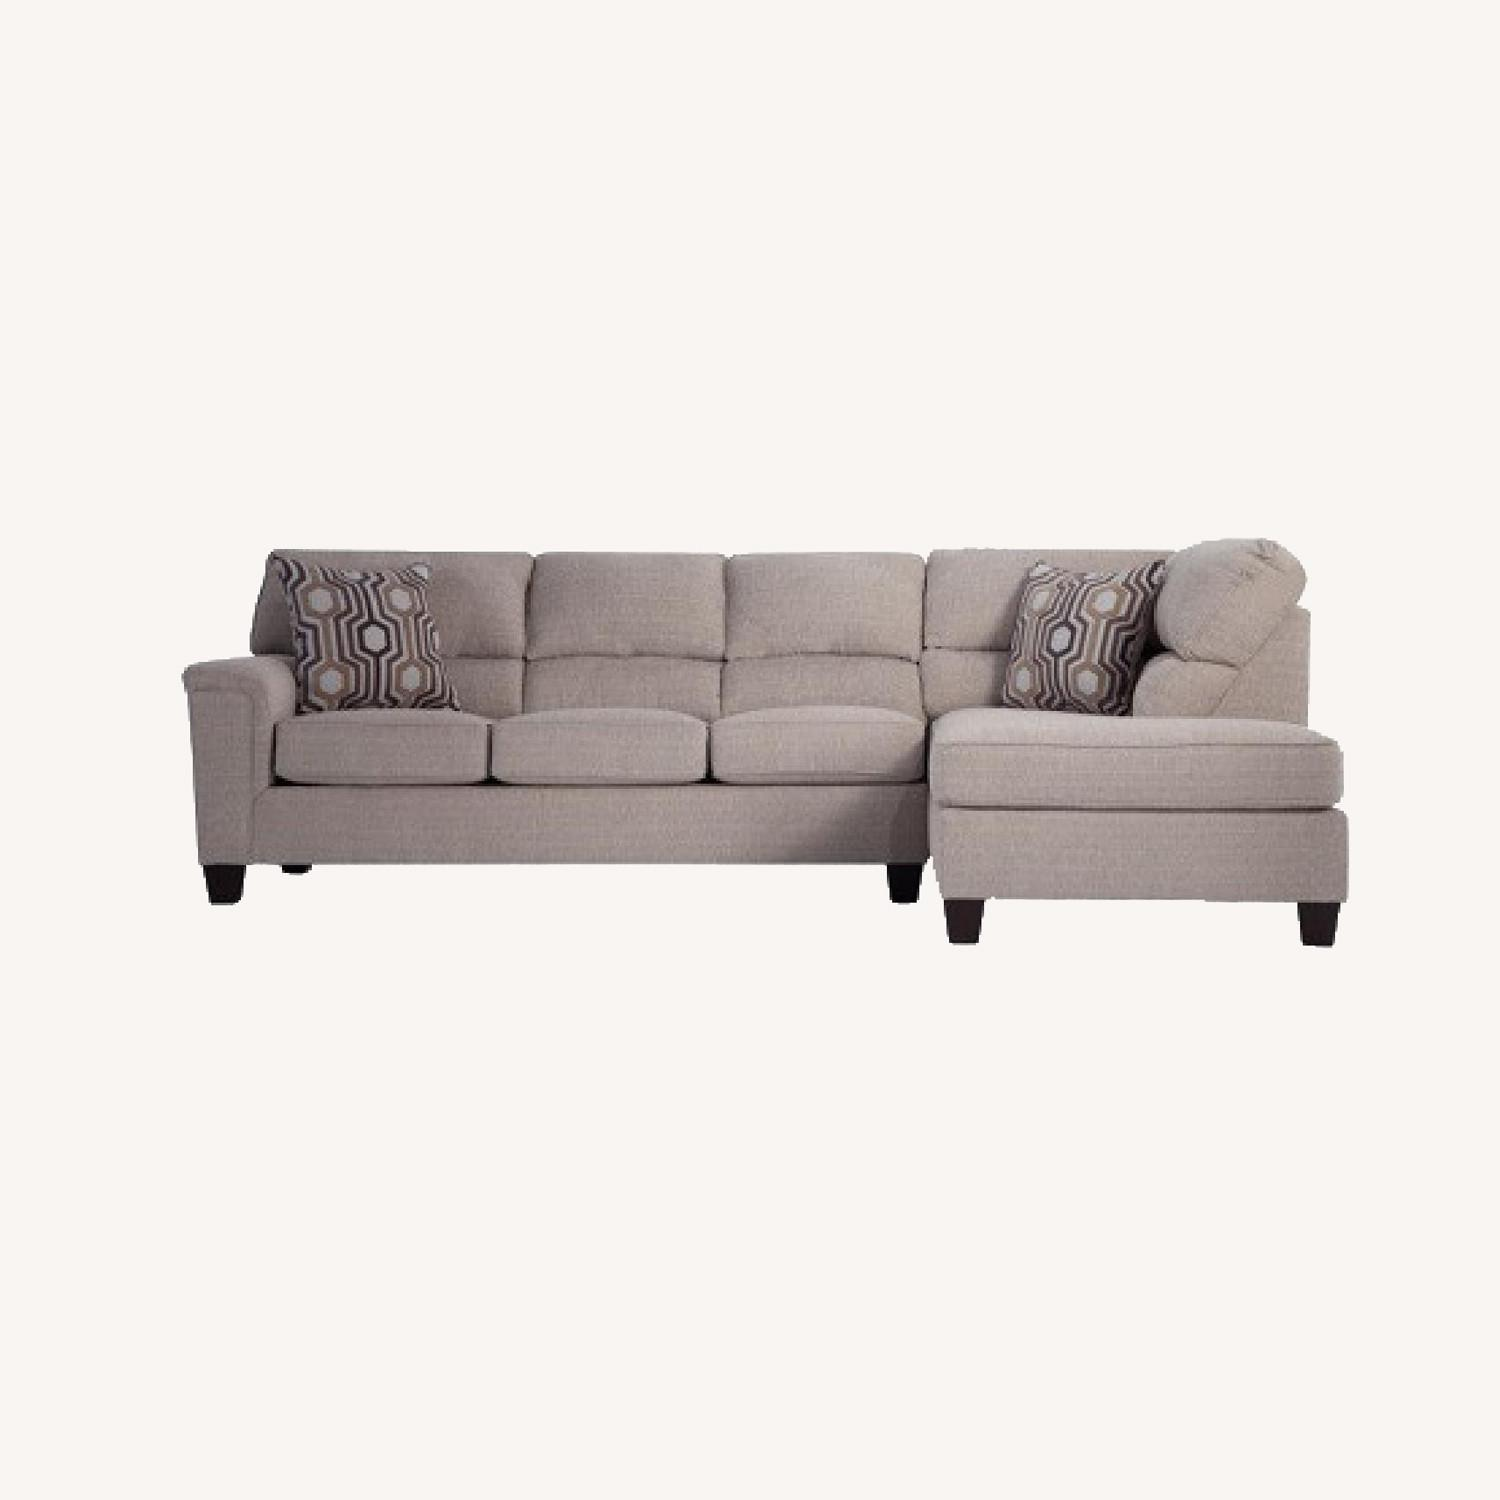 Bob's Discount Beige Sectional - image-0